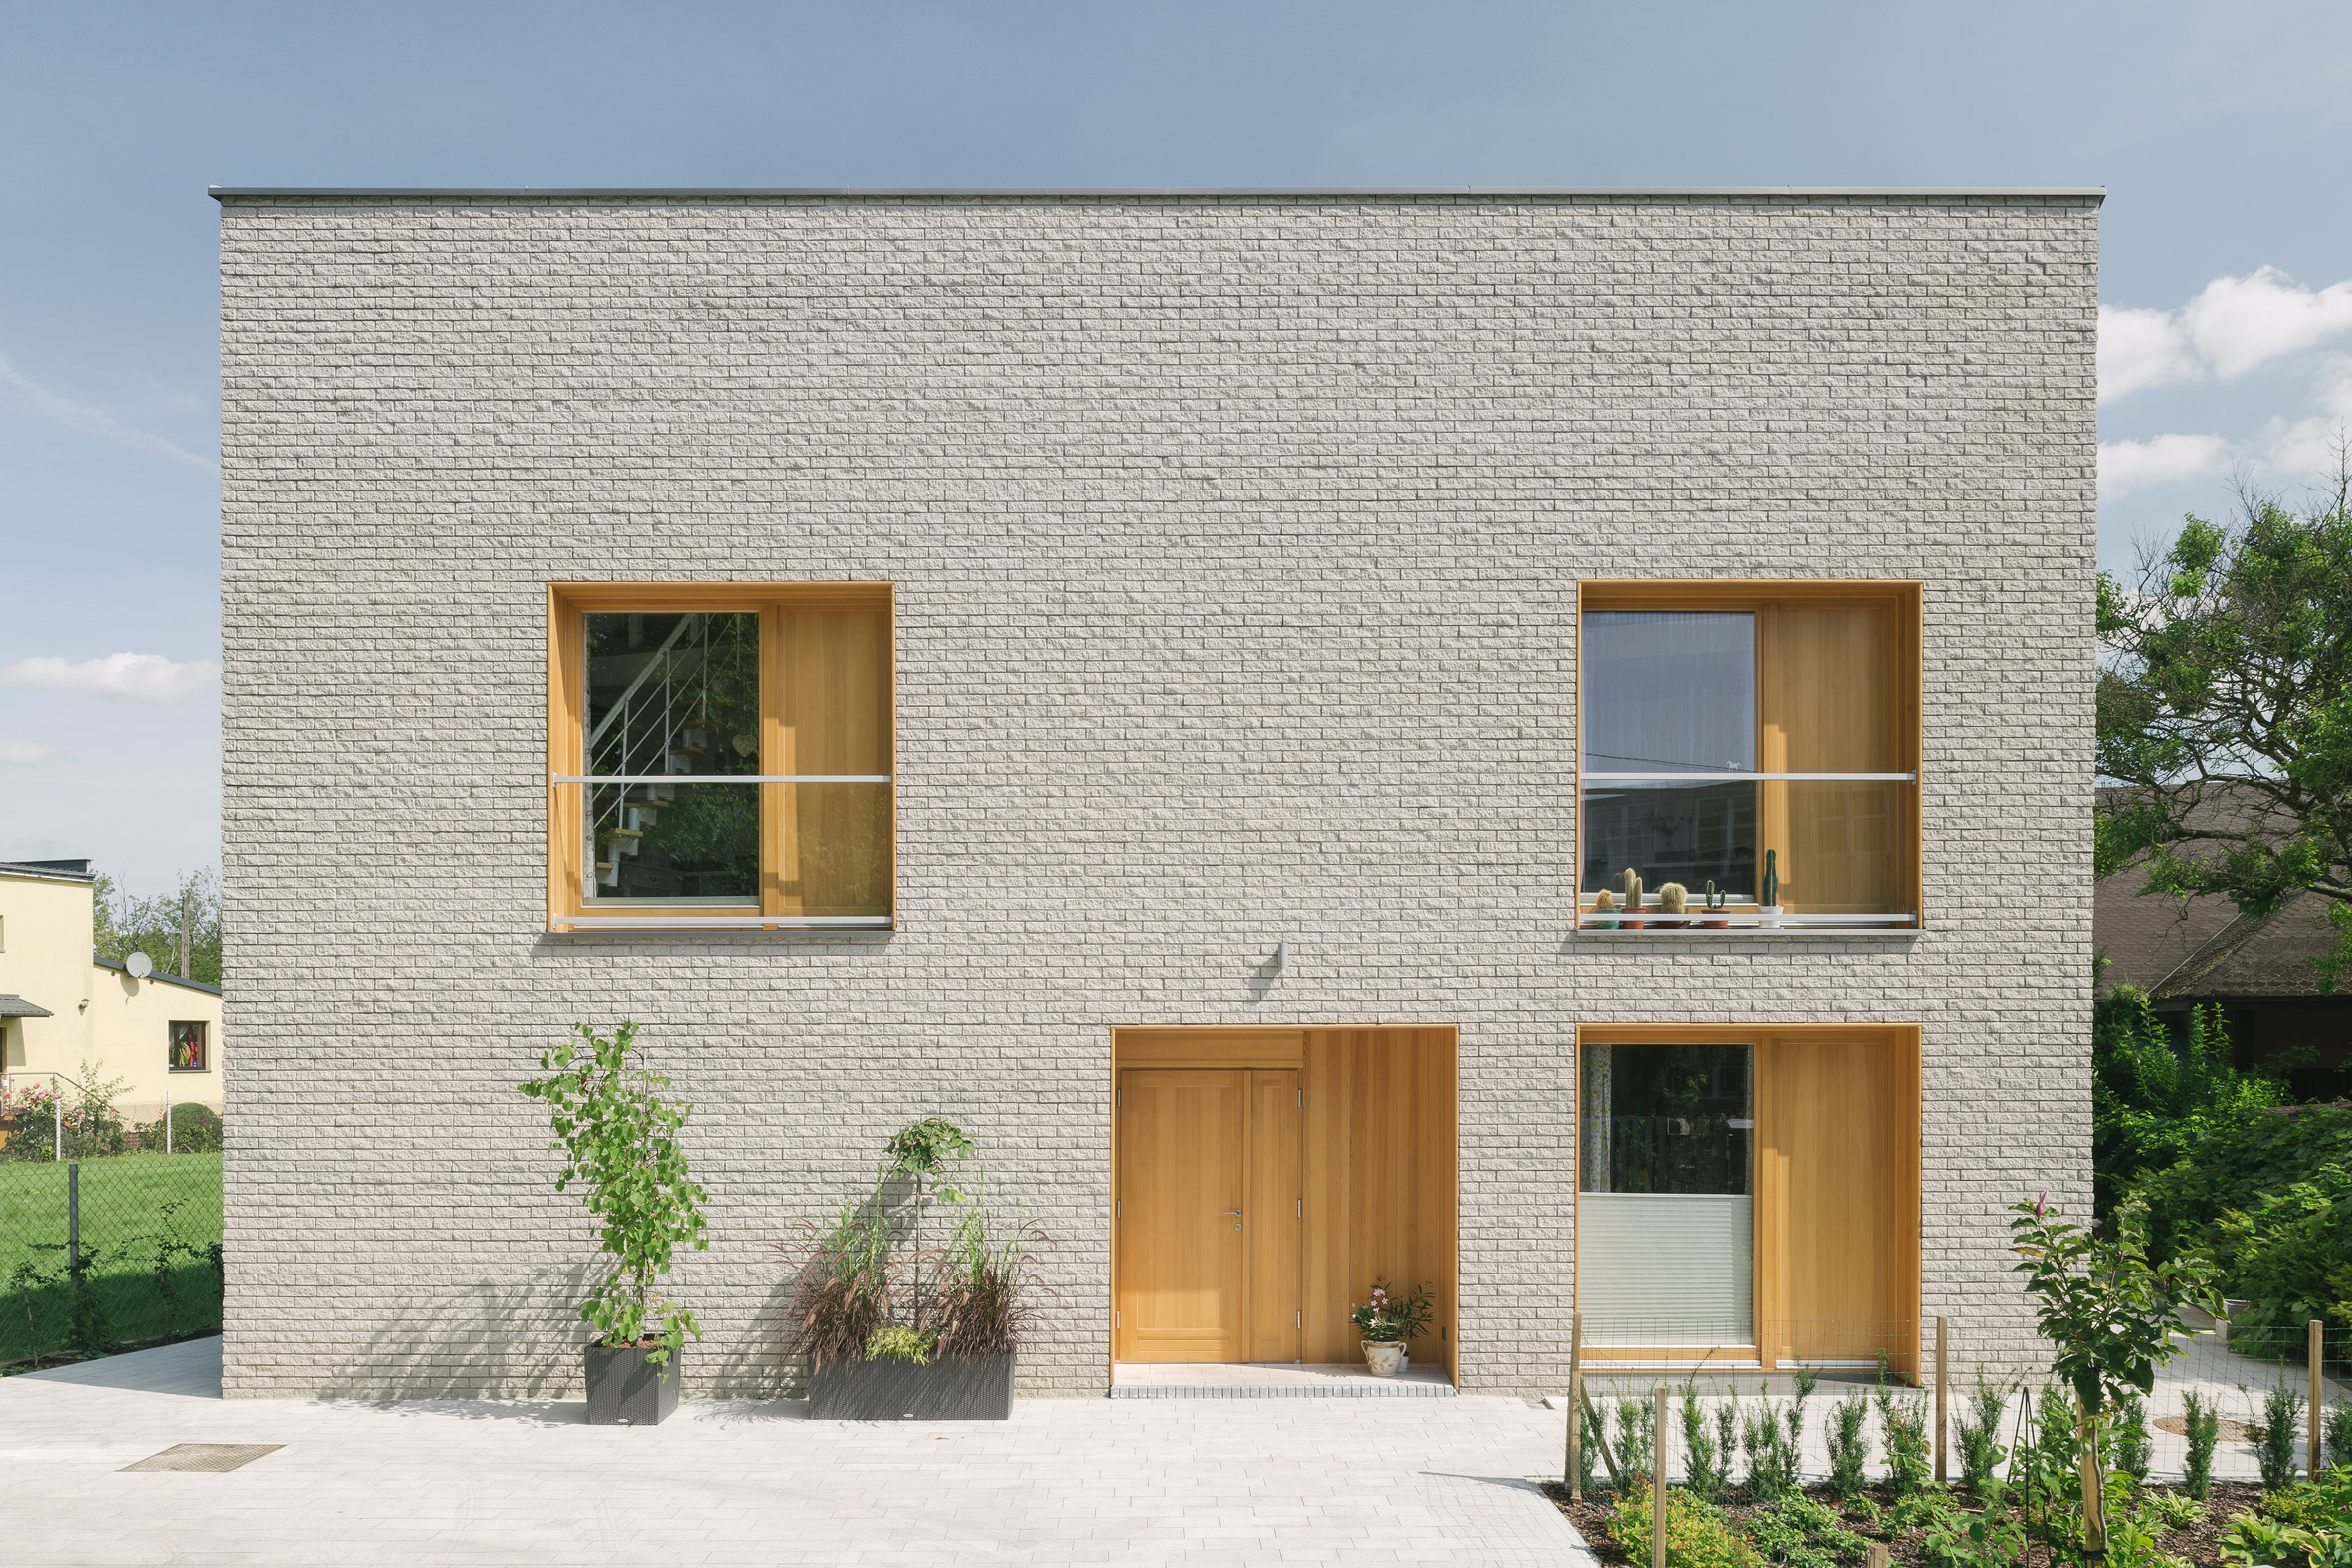 Oak-lined windows contrast pale-brick facades at MFRMGR's house in Warsaw